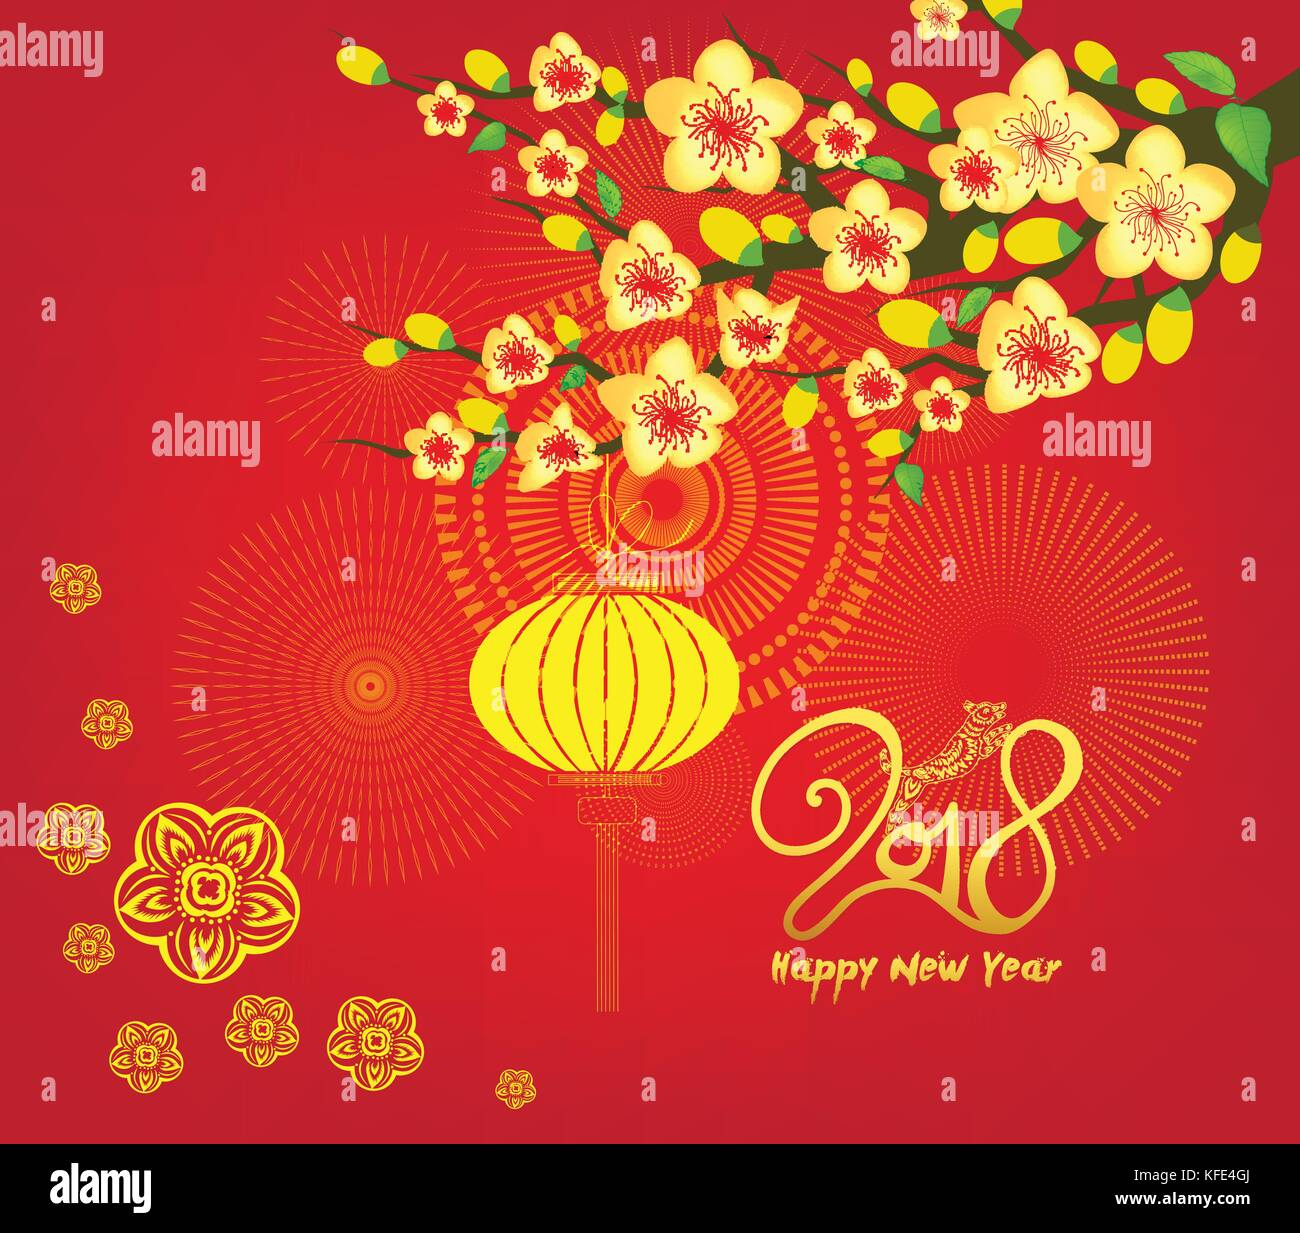 Happy new year 2018 greeting card and chinese new year of the dog happy new year 2018 greeting card and chinese new year of the dog cherry blossom background kristyandbryce Choice Image